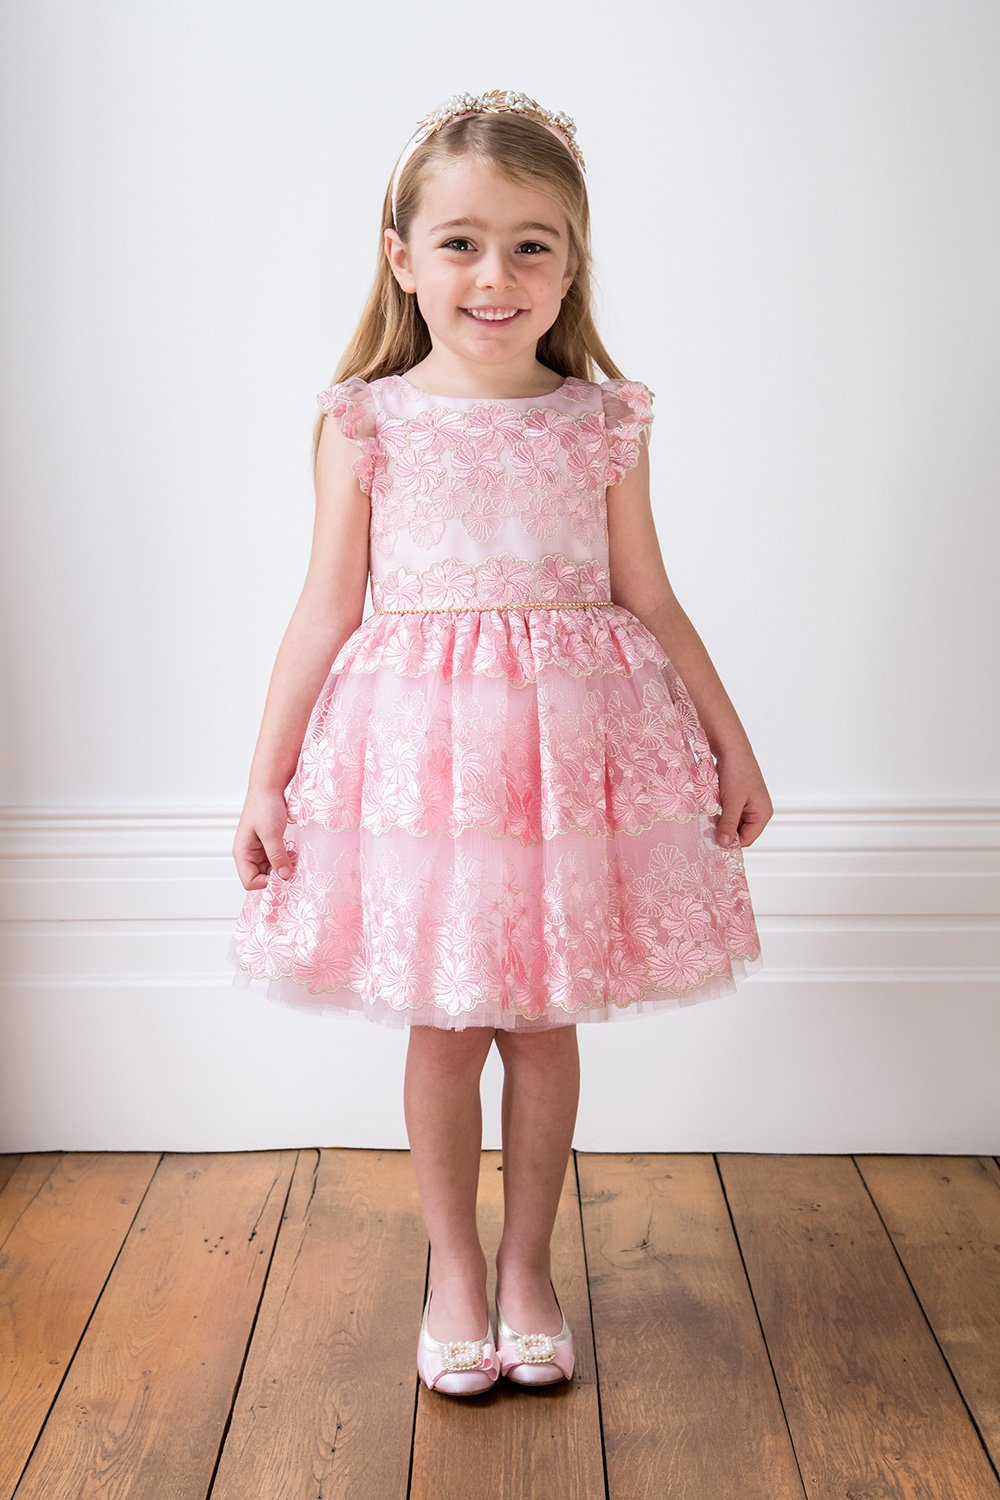 Vestido de niña de las flores rosadas de Blush - David Childrens Wear